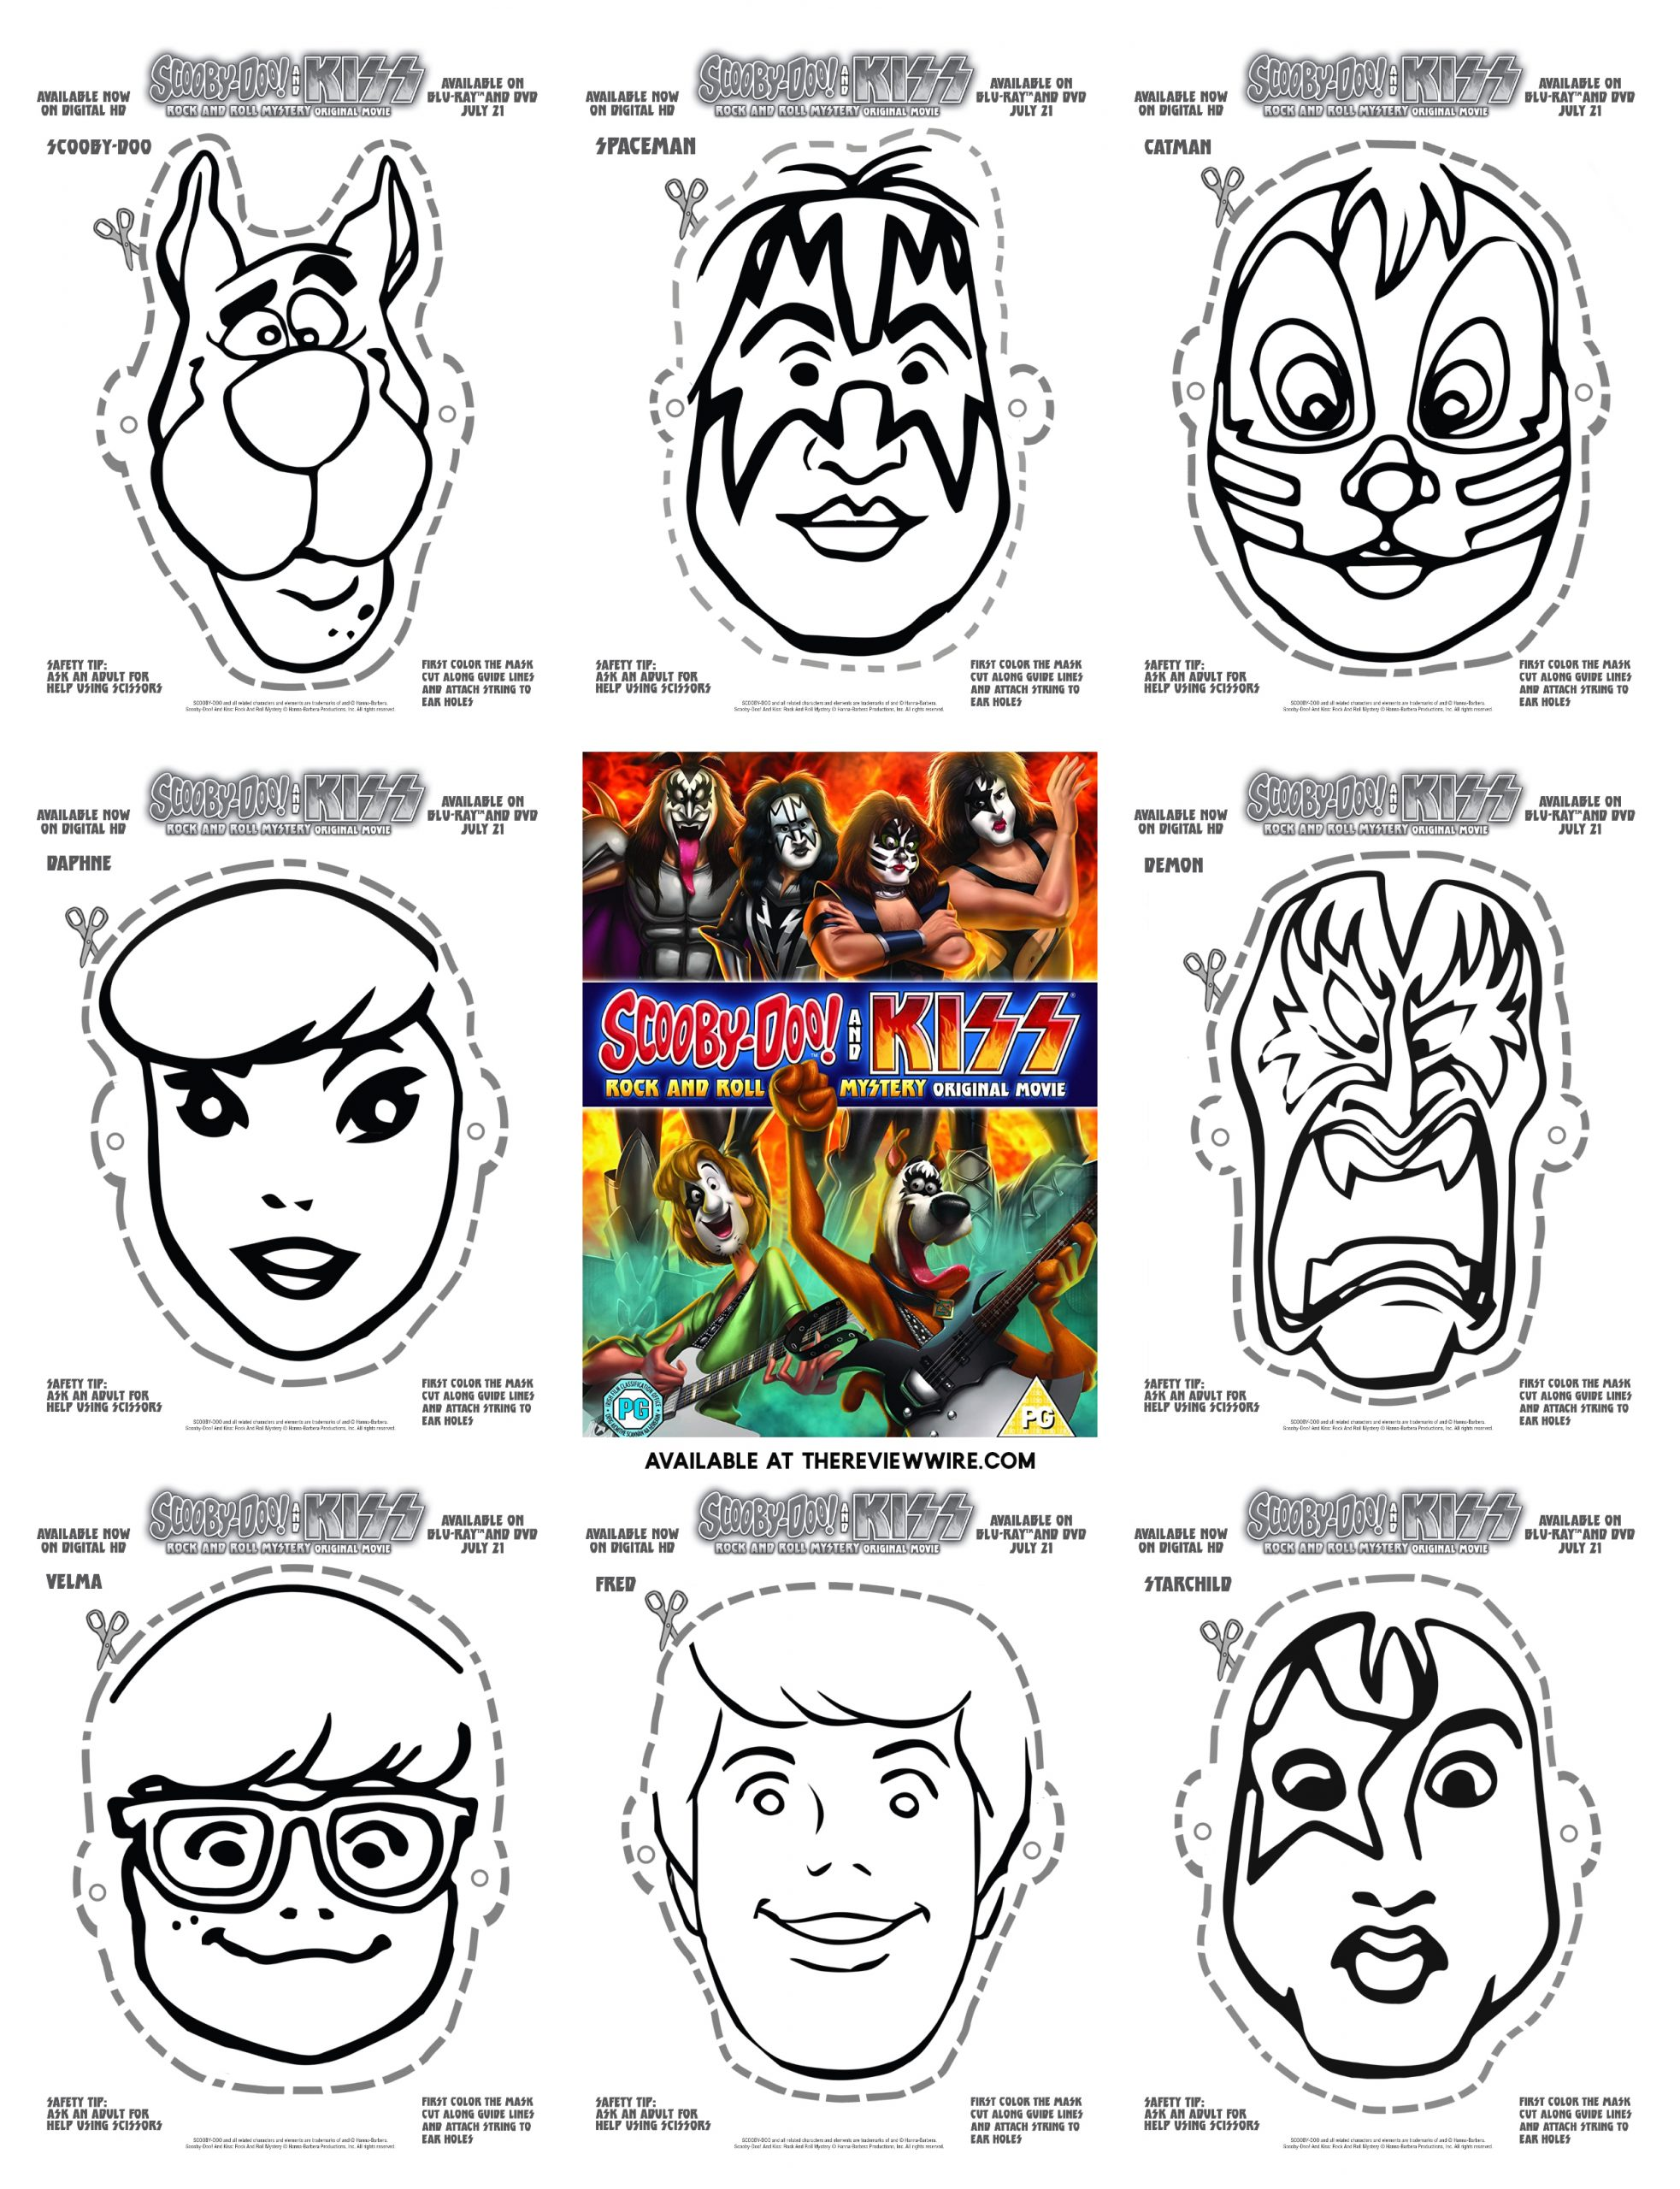 Scooby-Doo! And KISS Printables